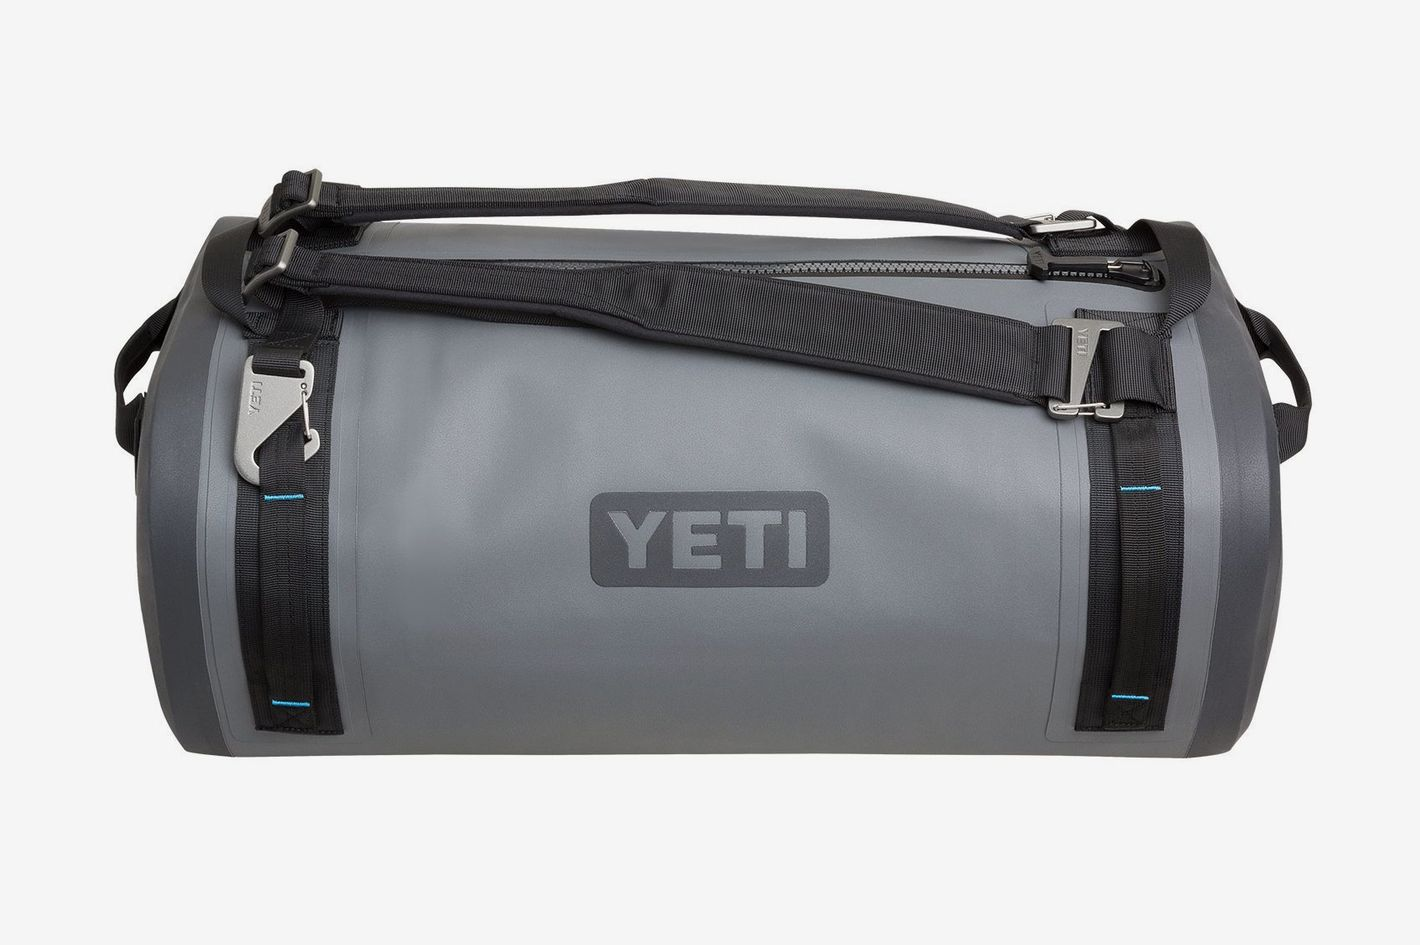 Yeti Panga Airtight Waterproof Submersible Duffel Bag 07faf027c3dcf